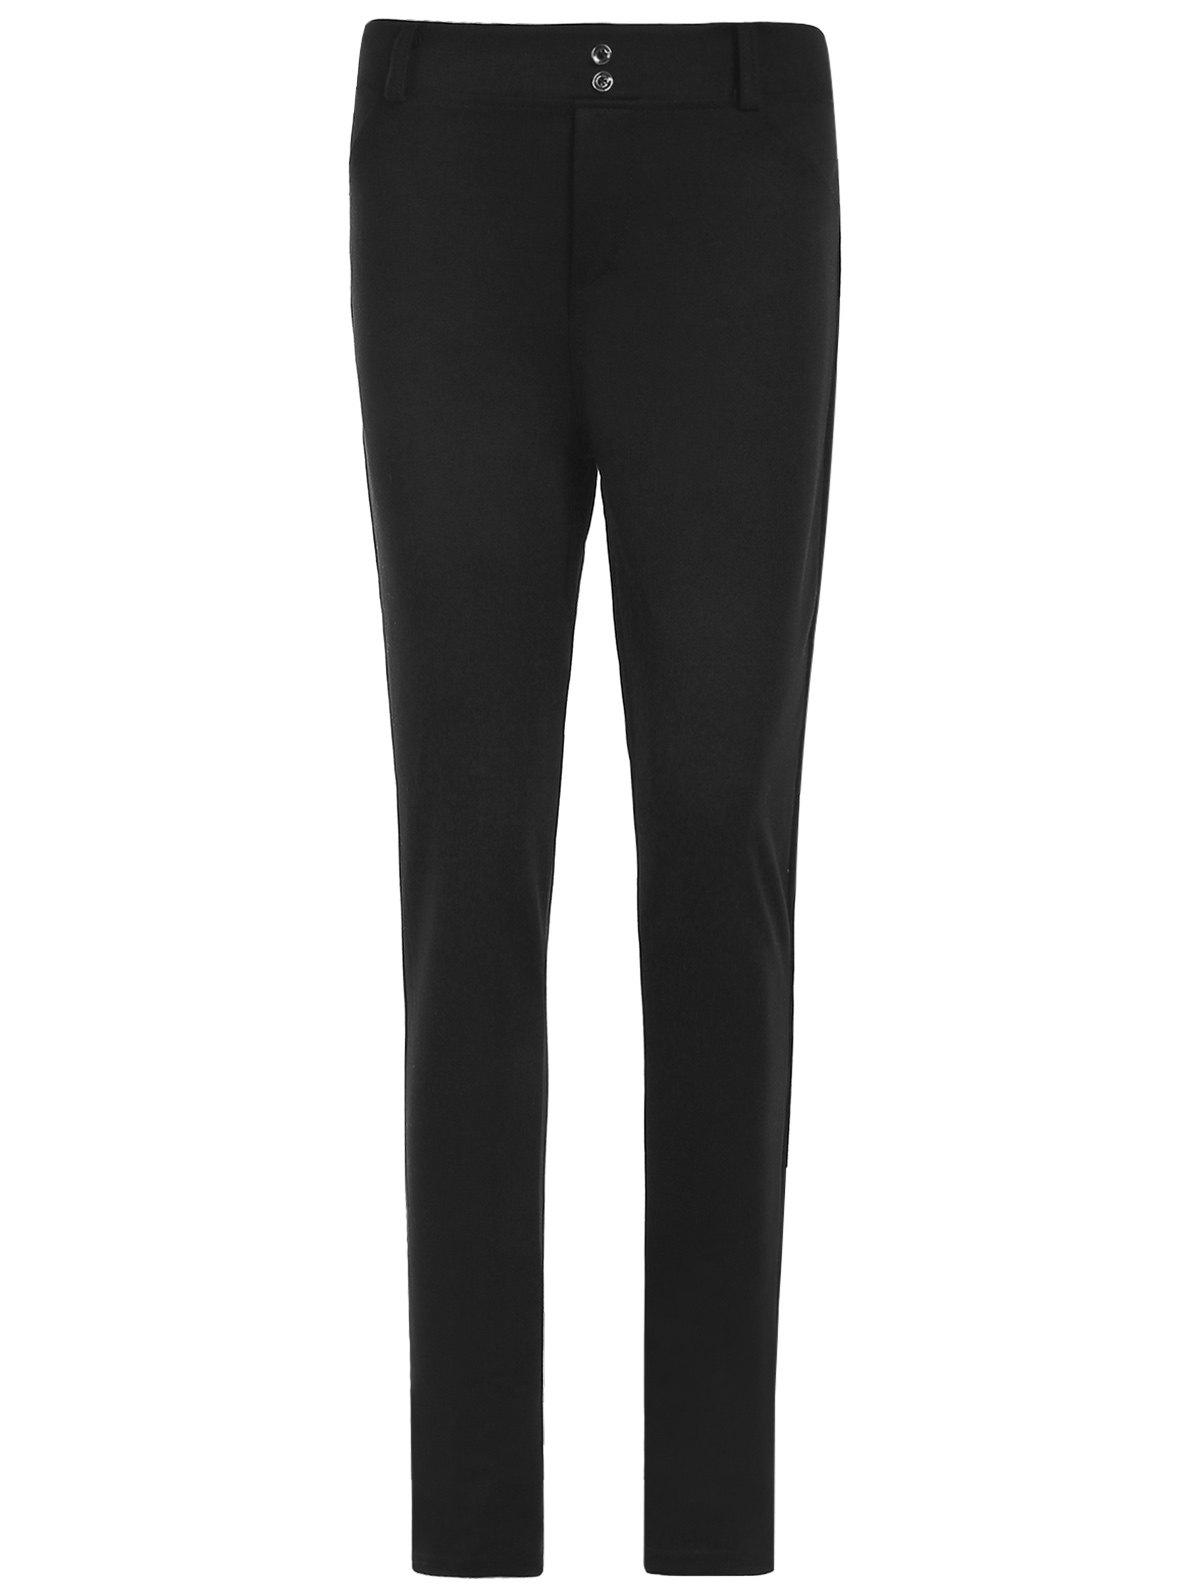 Attractive Pure Color Mid Waist Bodycon Leggings For Women - BLACK S